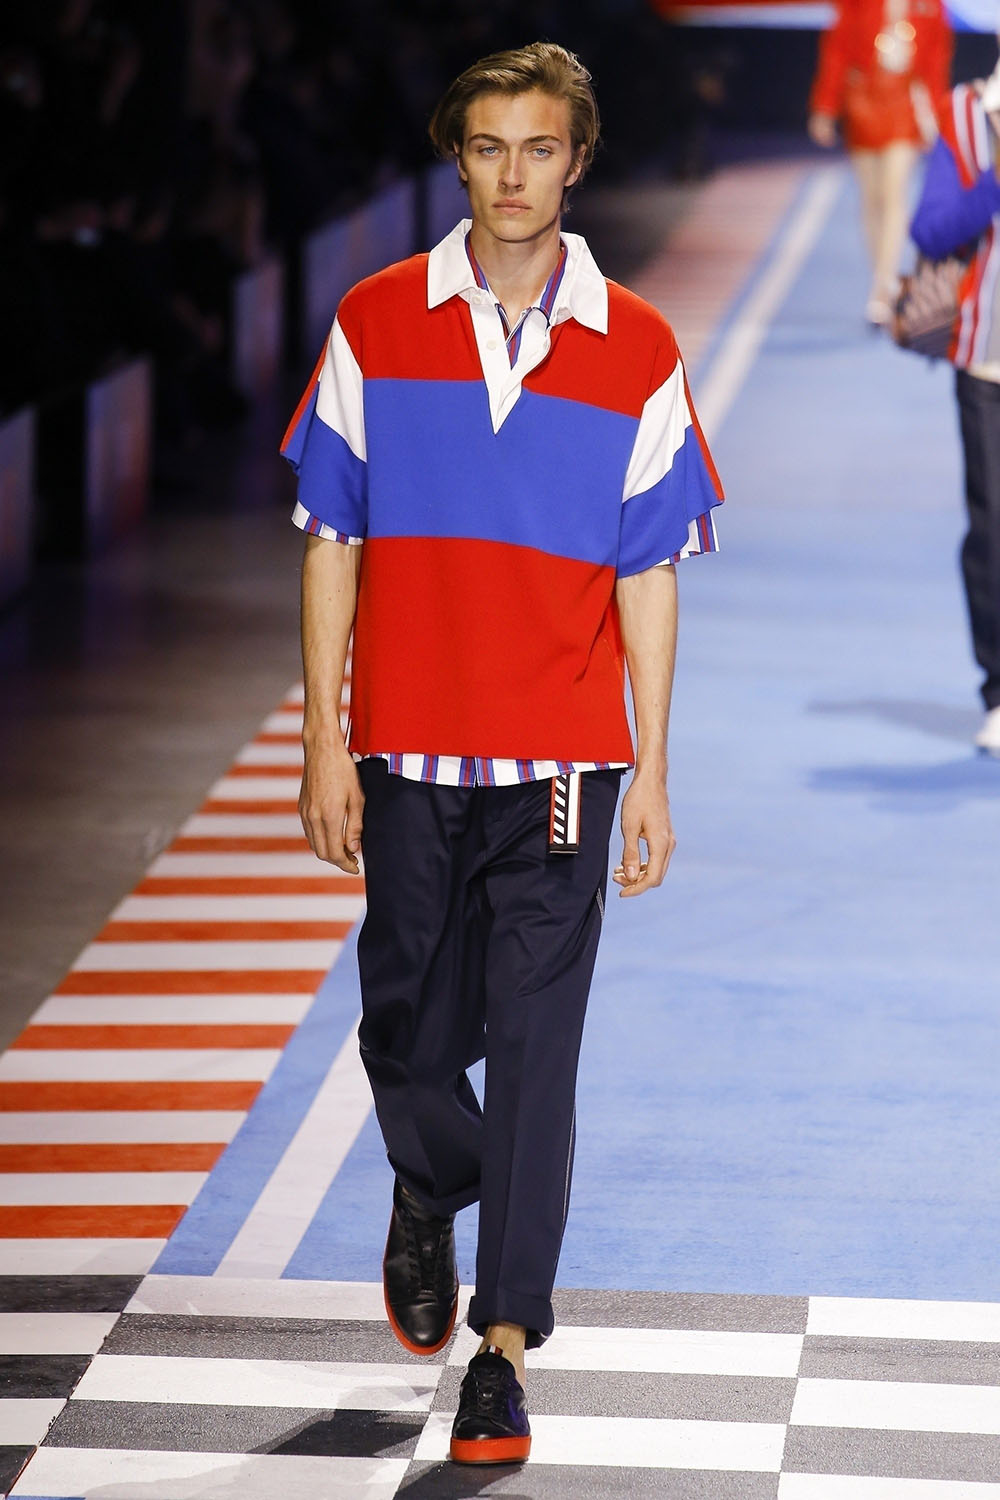 Lucky Blue Smith at The Tommy Hilfiger fashion show in Milan